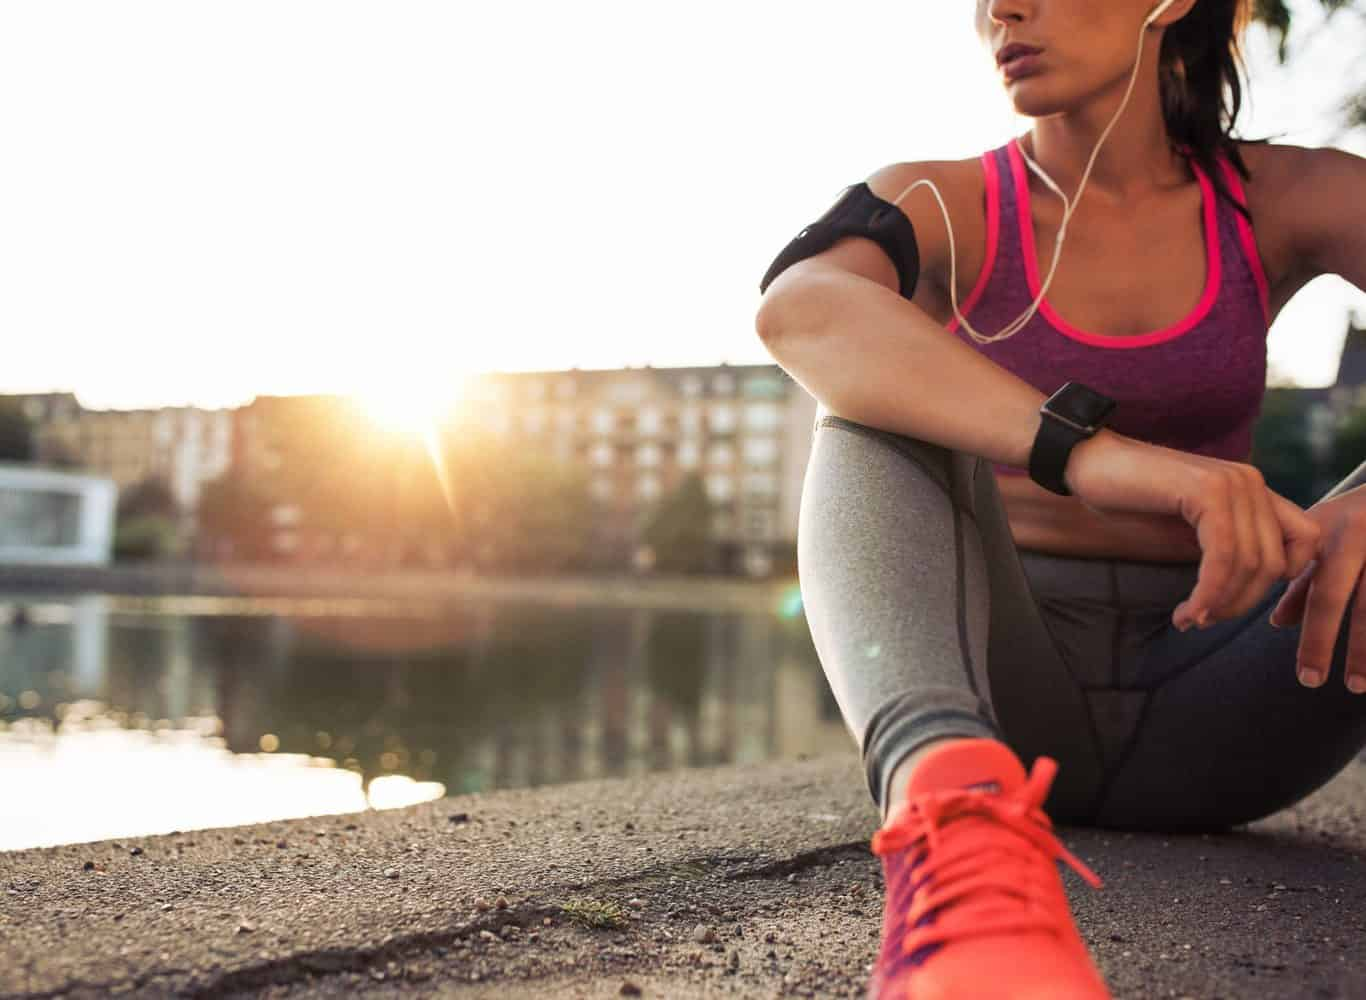 A fit woman resting after a run in an urban environment.